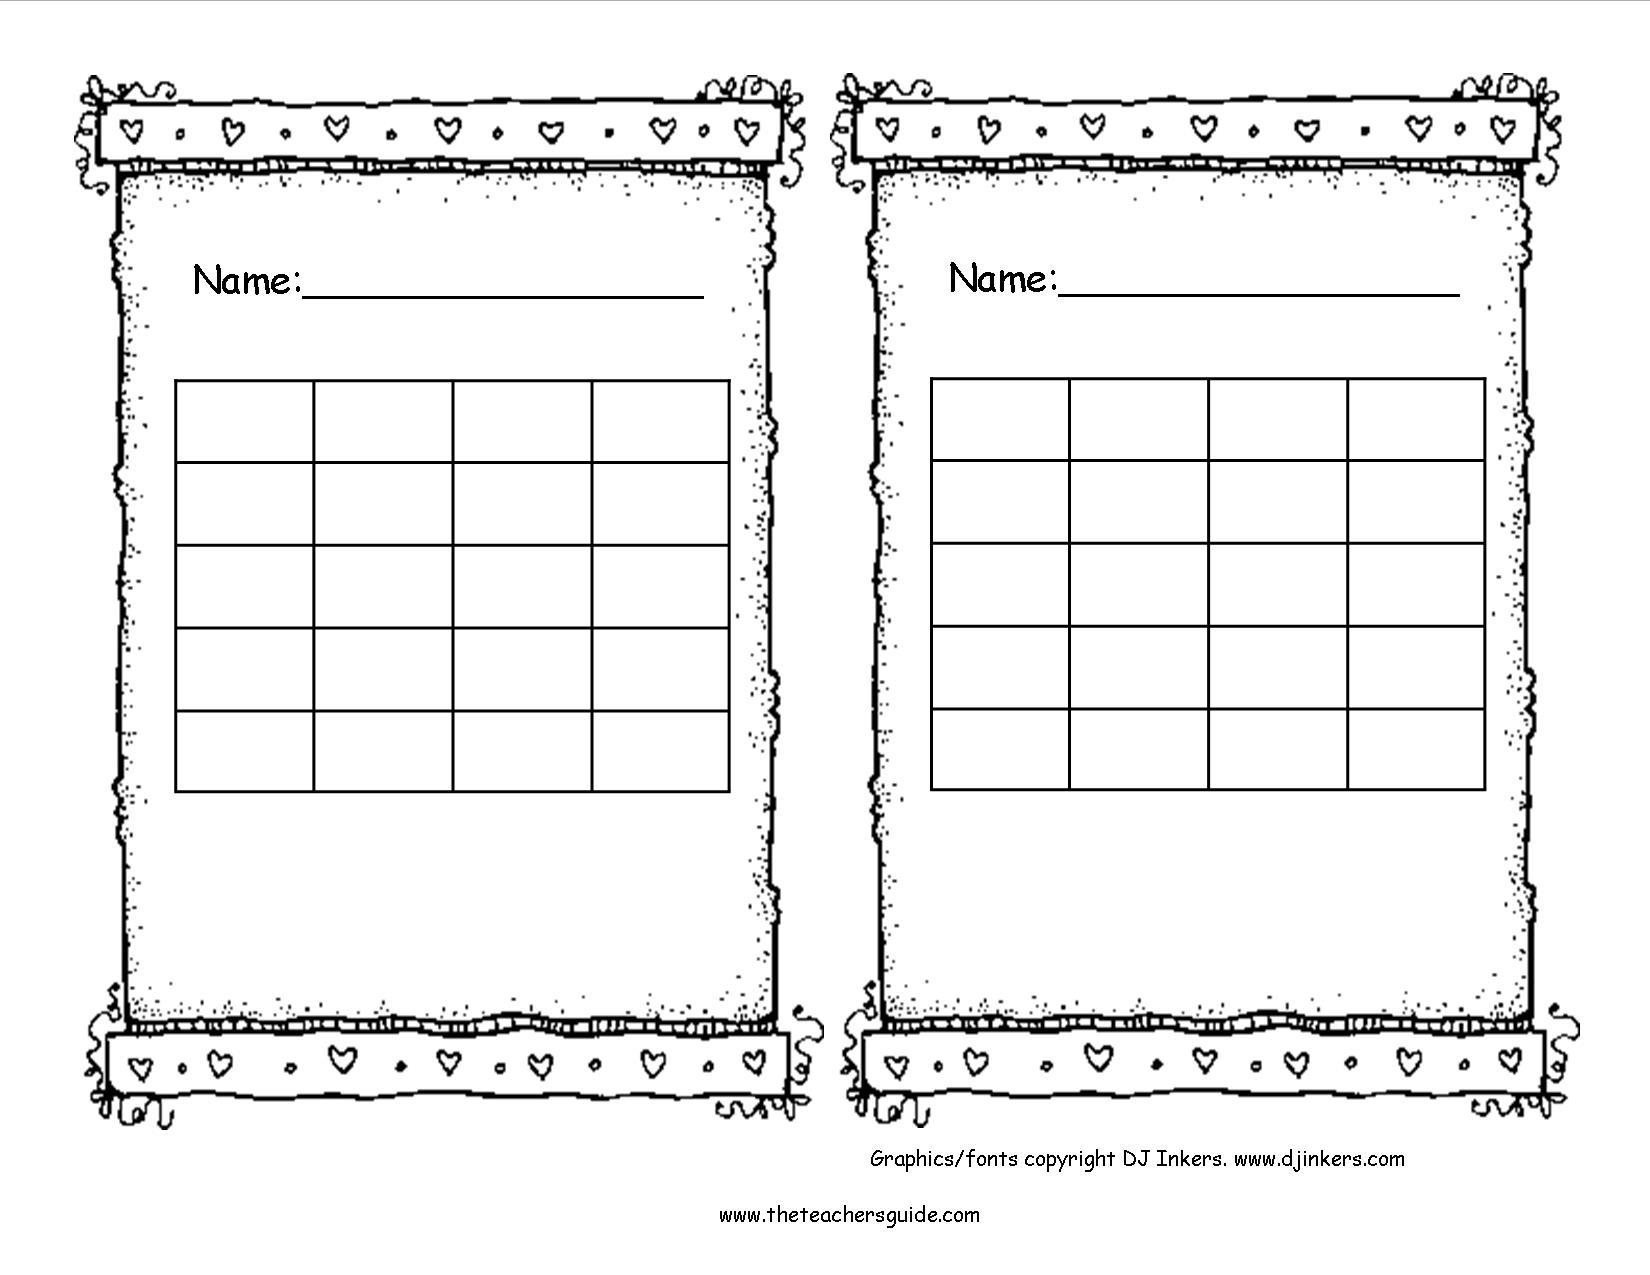 Free Printable Reward And Incentive Charts pertaining to Free Printable Blank Behavior Charts